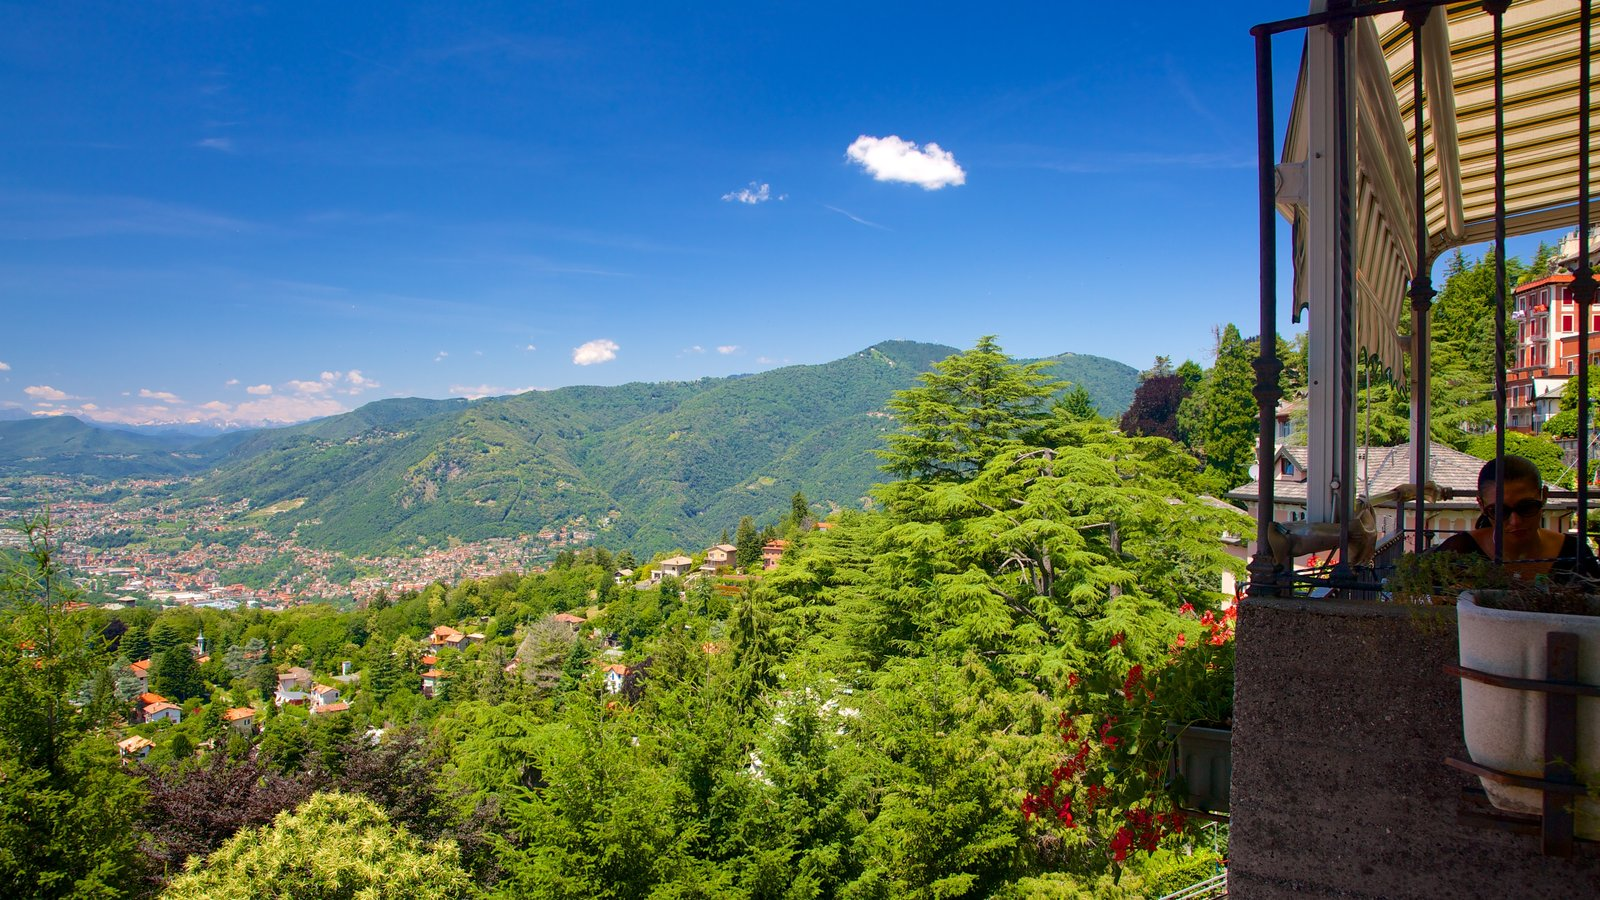 Como-Brunate Funicular featuring tranquil scenes, mountains and views